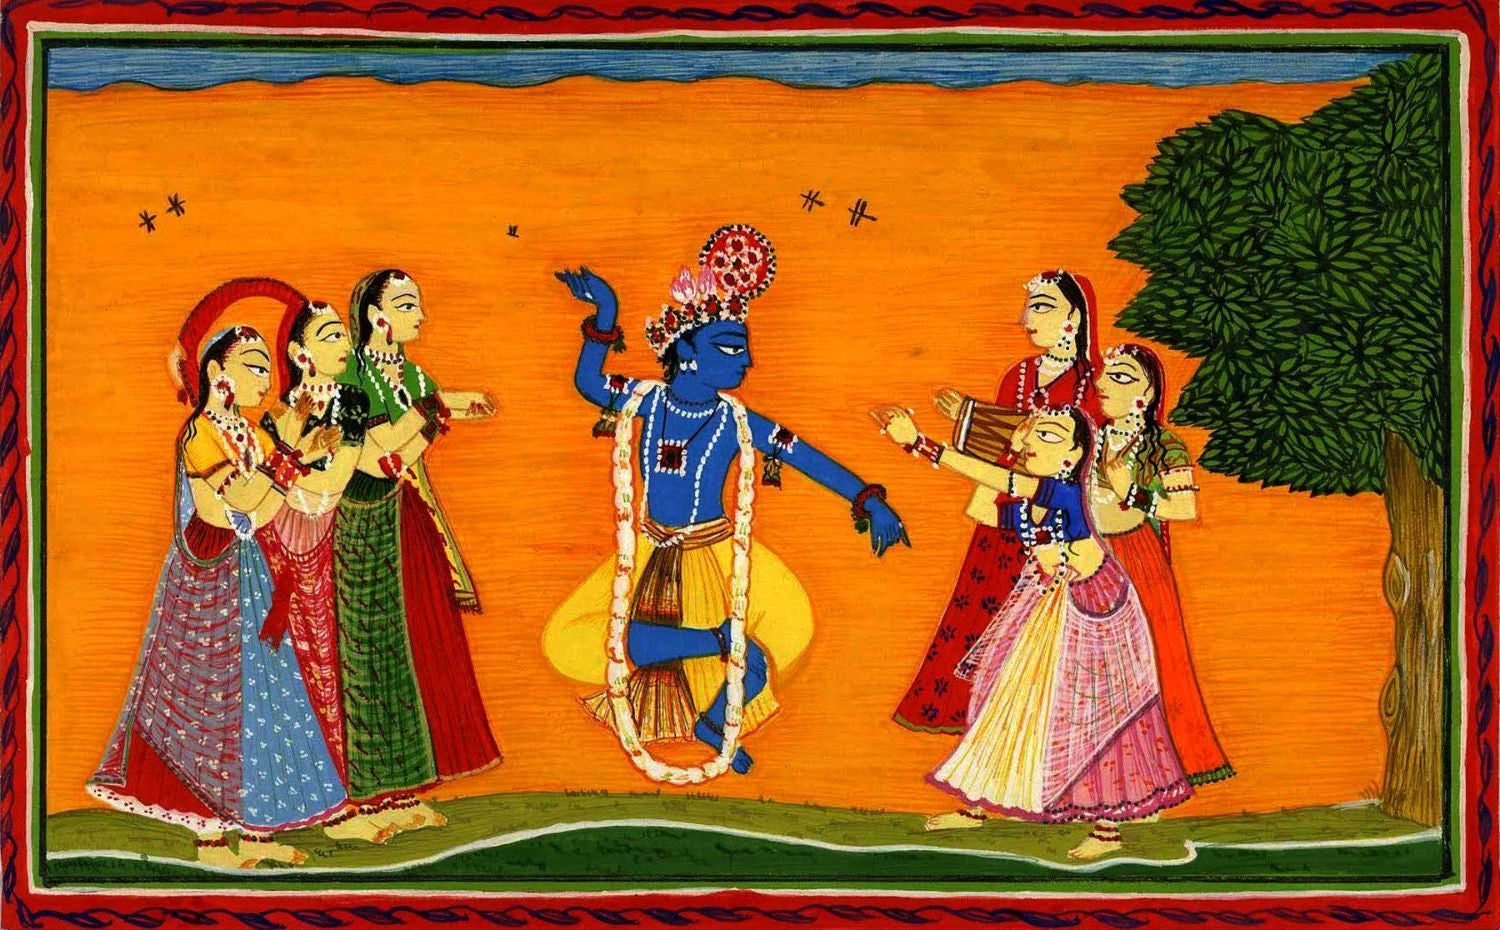 Indian Miniature Paintings | Buy Posters, Frames, Canvas, Digital Art & Large Size Prints